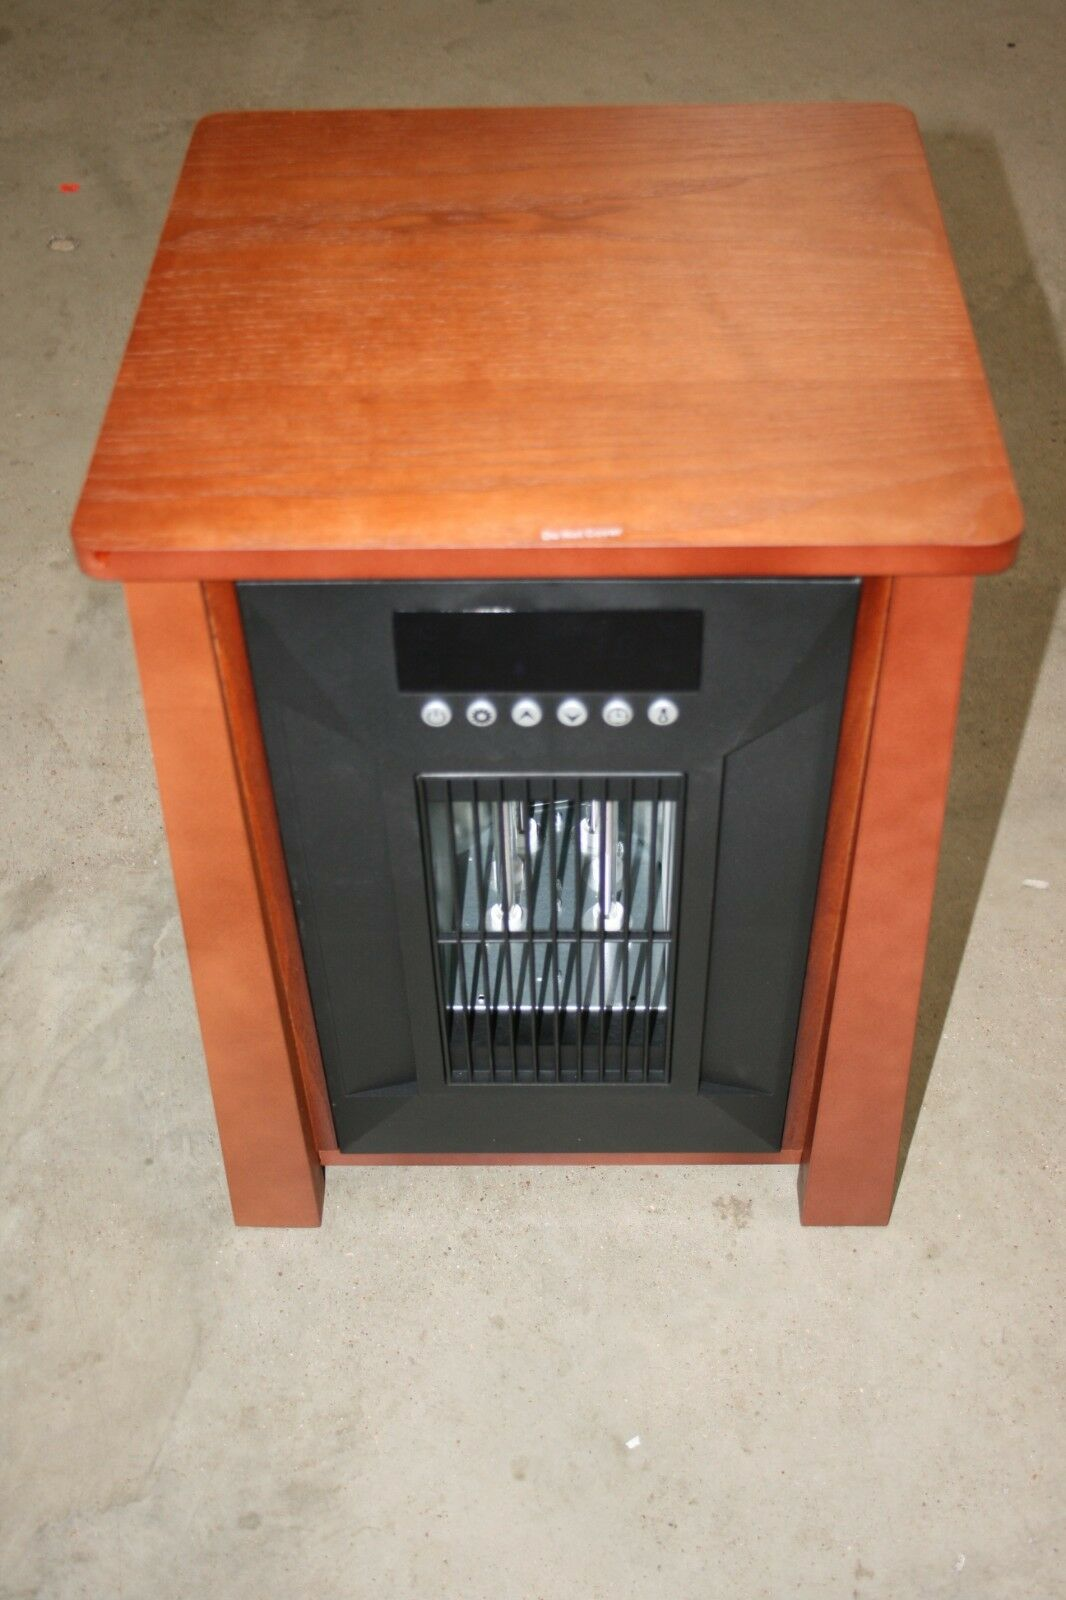 Electric Portable Infrared Quartz Space Heater w/ Remote